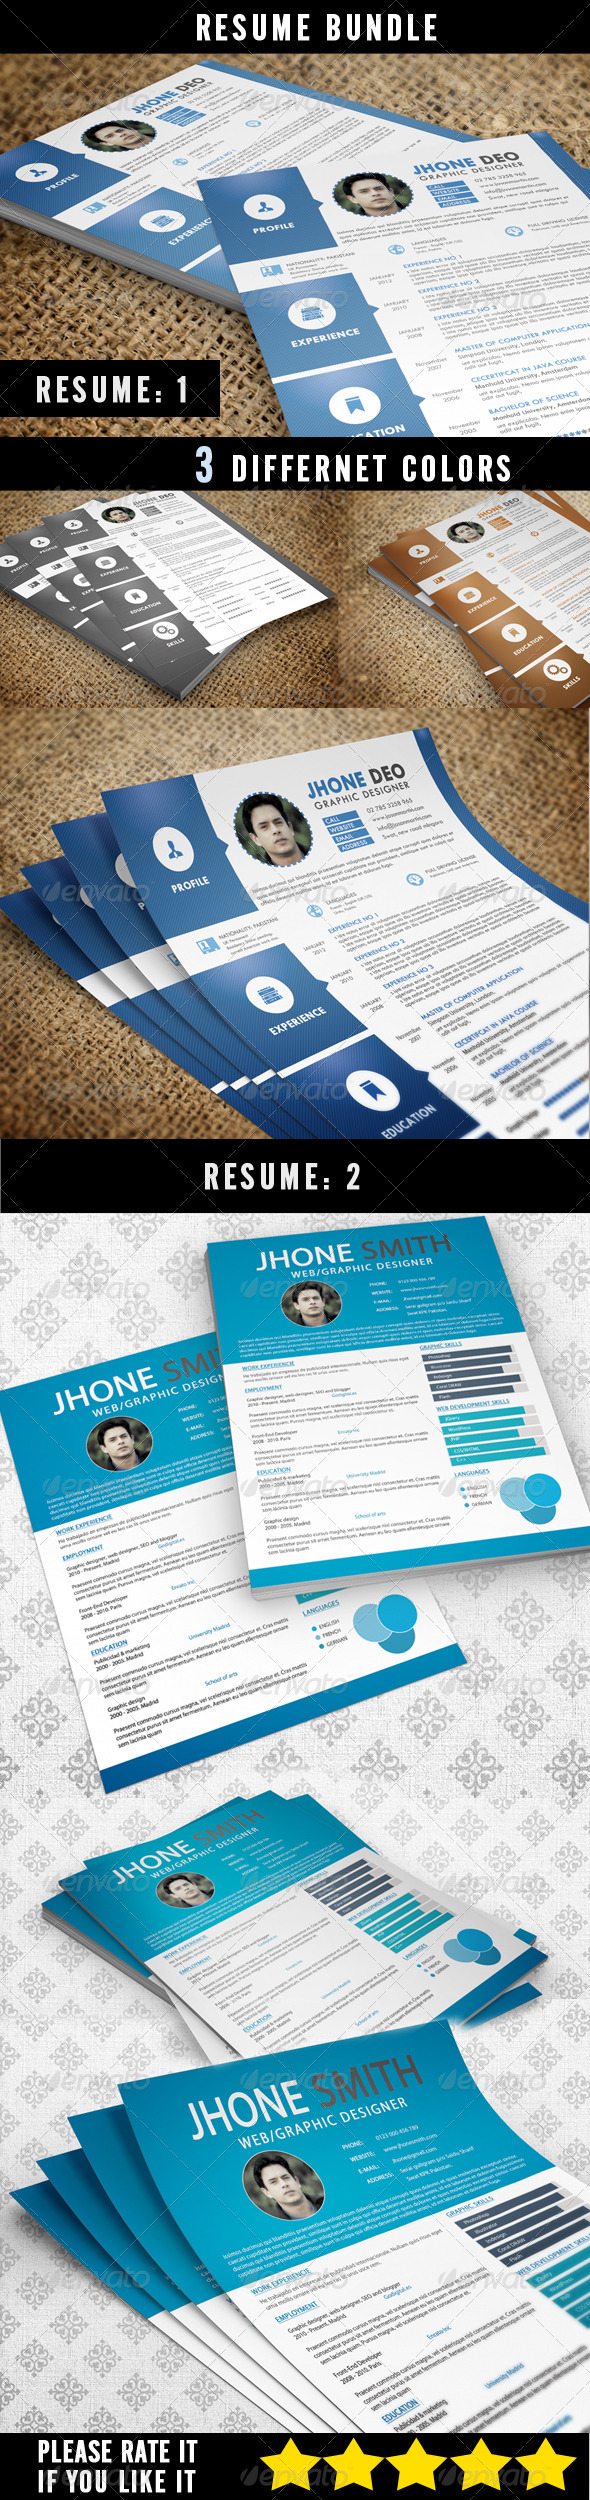 GraphicRiver Resume Bundle 2 in 1 6796110